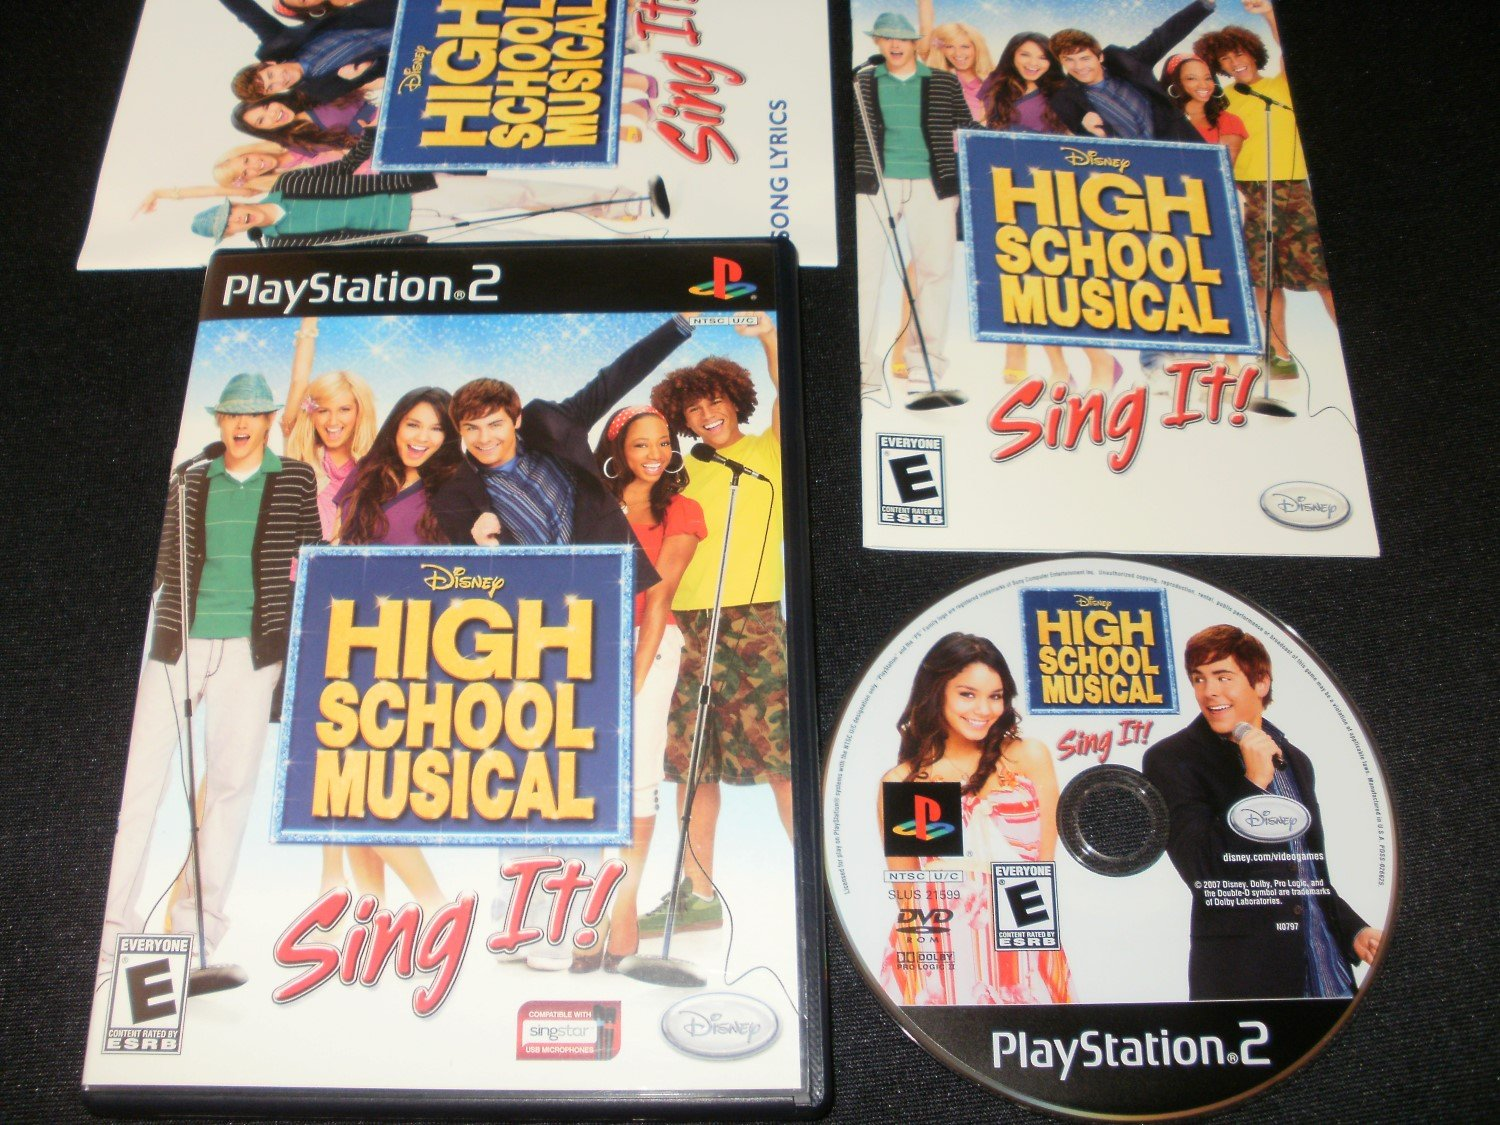 High School Musical Sing It - Sony PS2 - Complete CIB